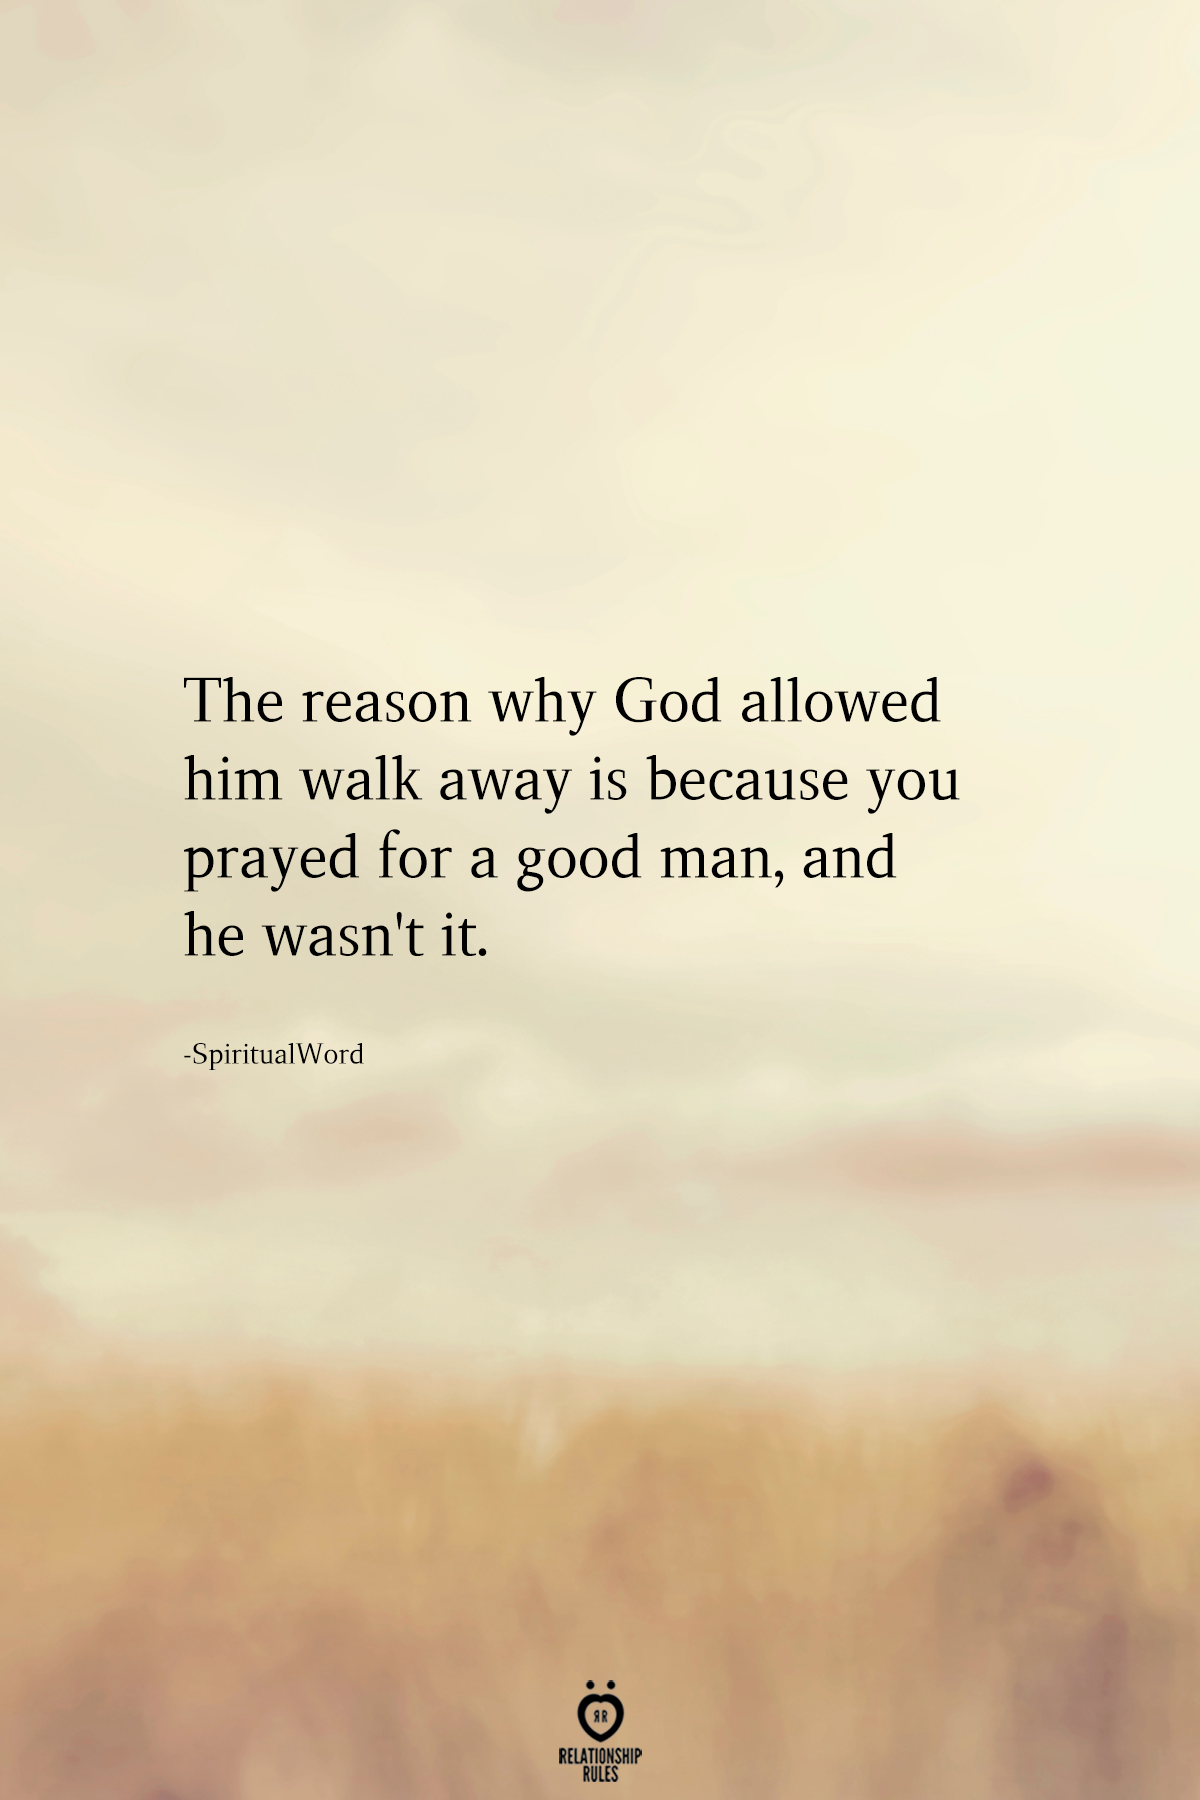 The Reason Why God Allowed Him Walk Away Is Because You Prayed For A Good Man